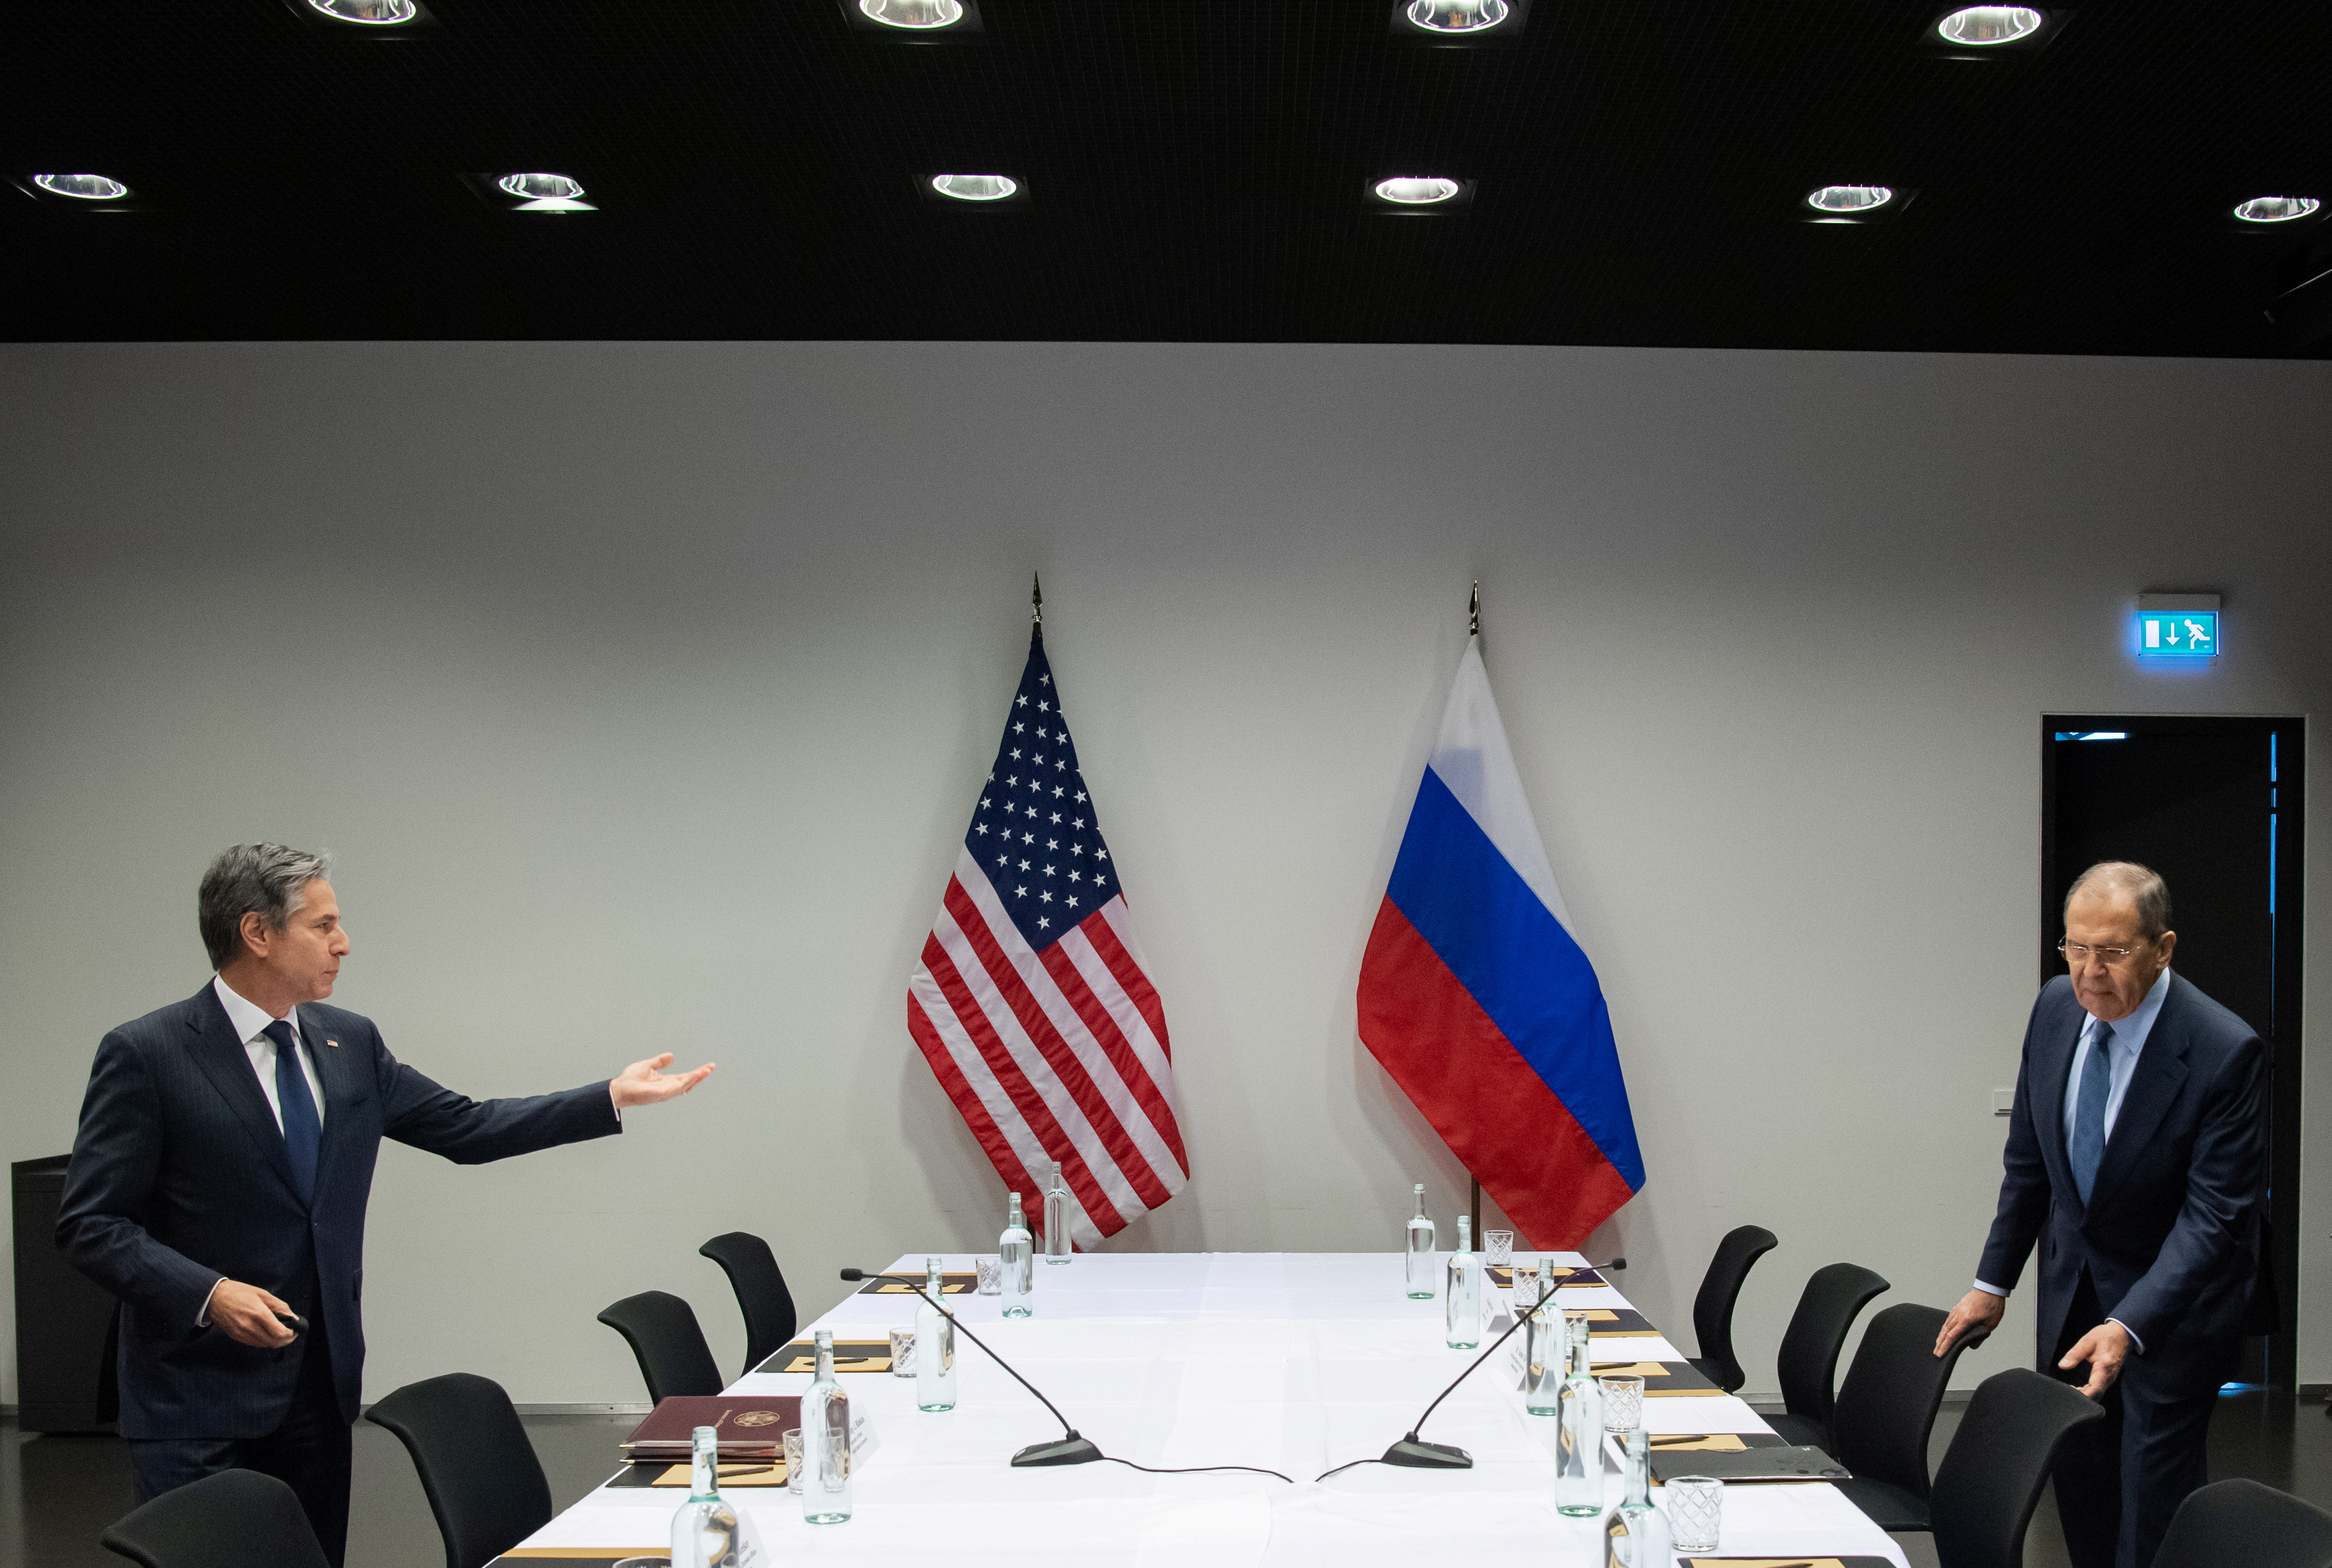 U.S. Secretary of State Antony Blinken meets with Russian Foreign Minister Sergey Lavrov at the Harpa Concert Hall, on the sidelines of the Arctic Council Ministerial summit, in Reykjavik, Iceland, May 19, 2021. Saul Loeb/Pool via REUTERS